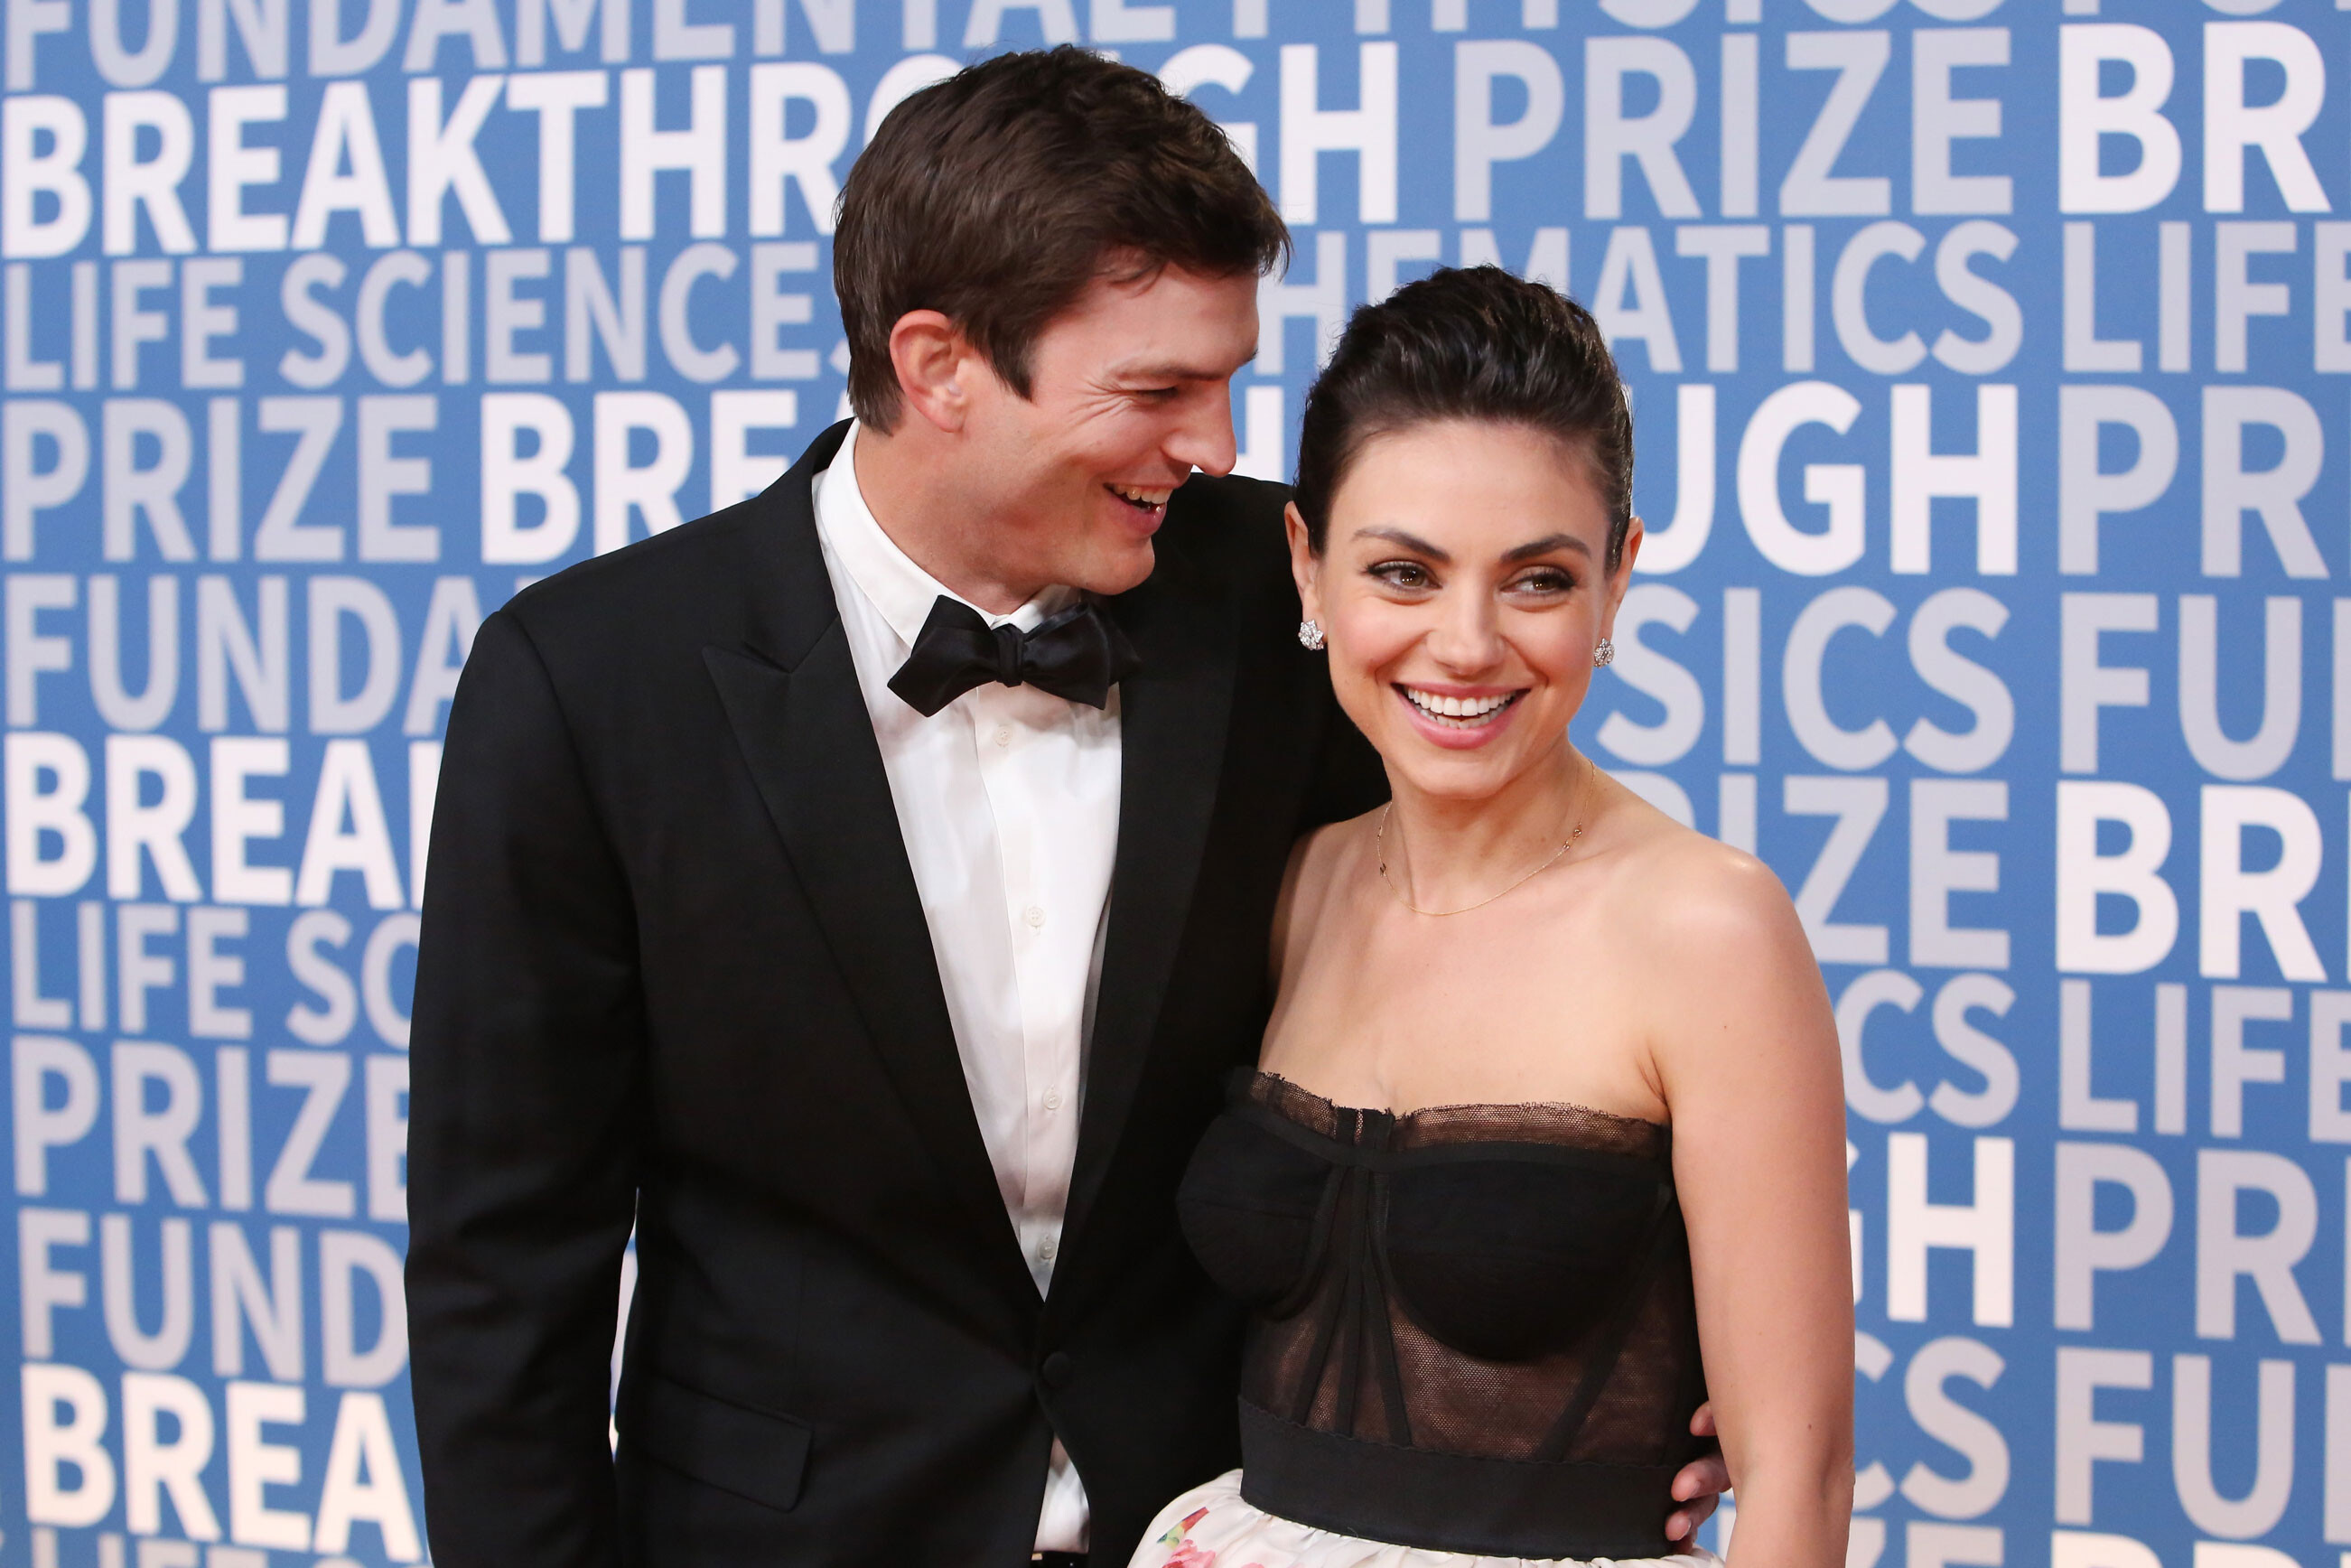 Ashton Kutcher and Mila Kunis prove their family is actually in favor of showering